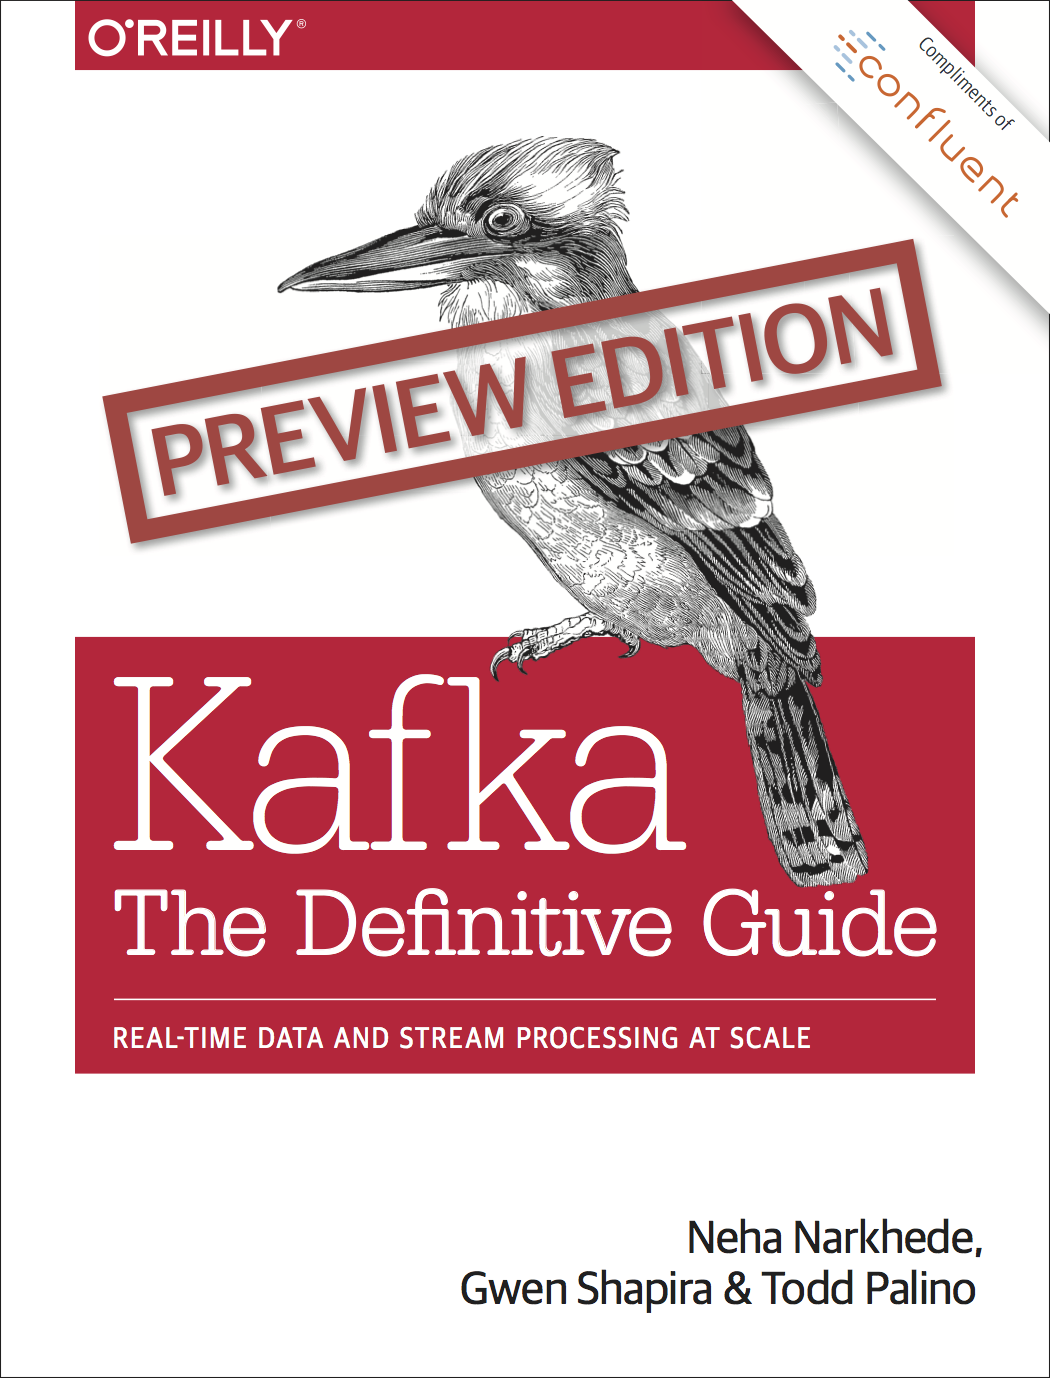 Kafka: The Definitive Guide <br/>(Preview Edition)